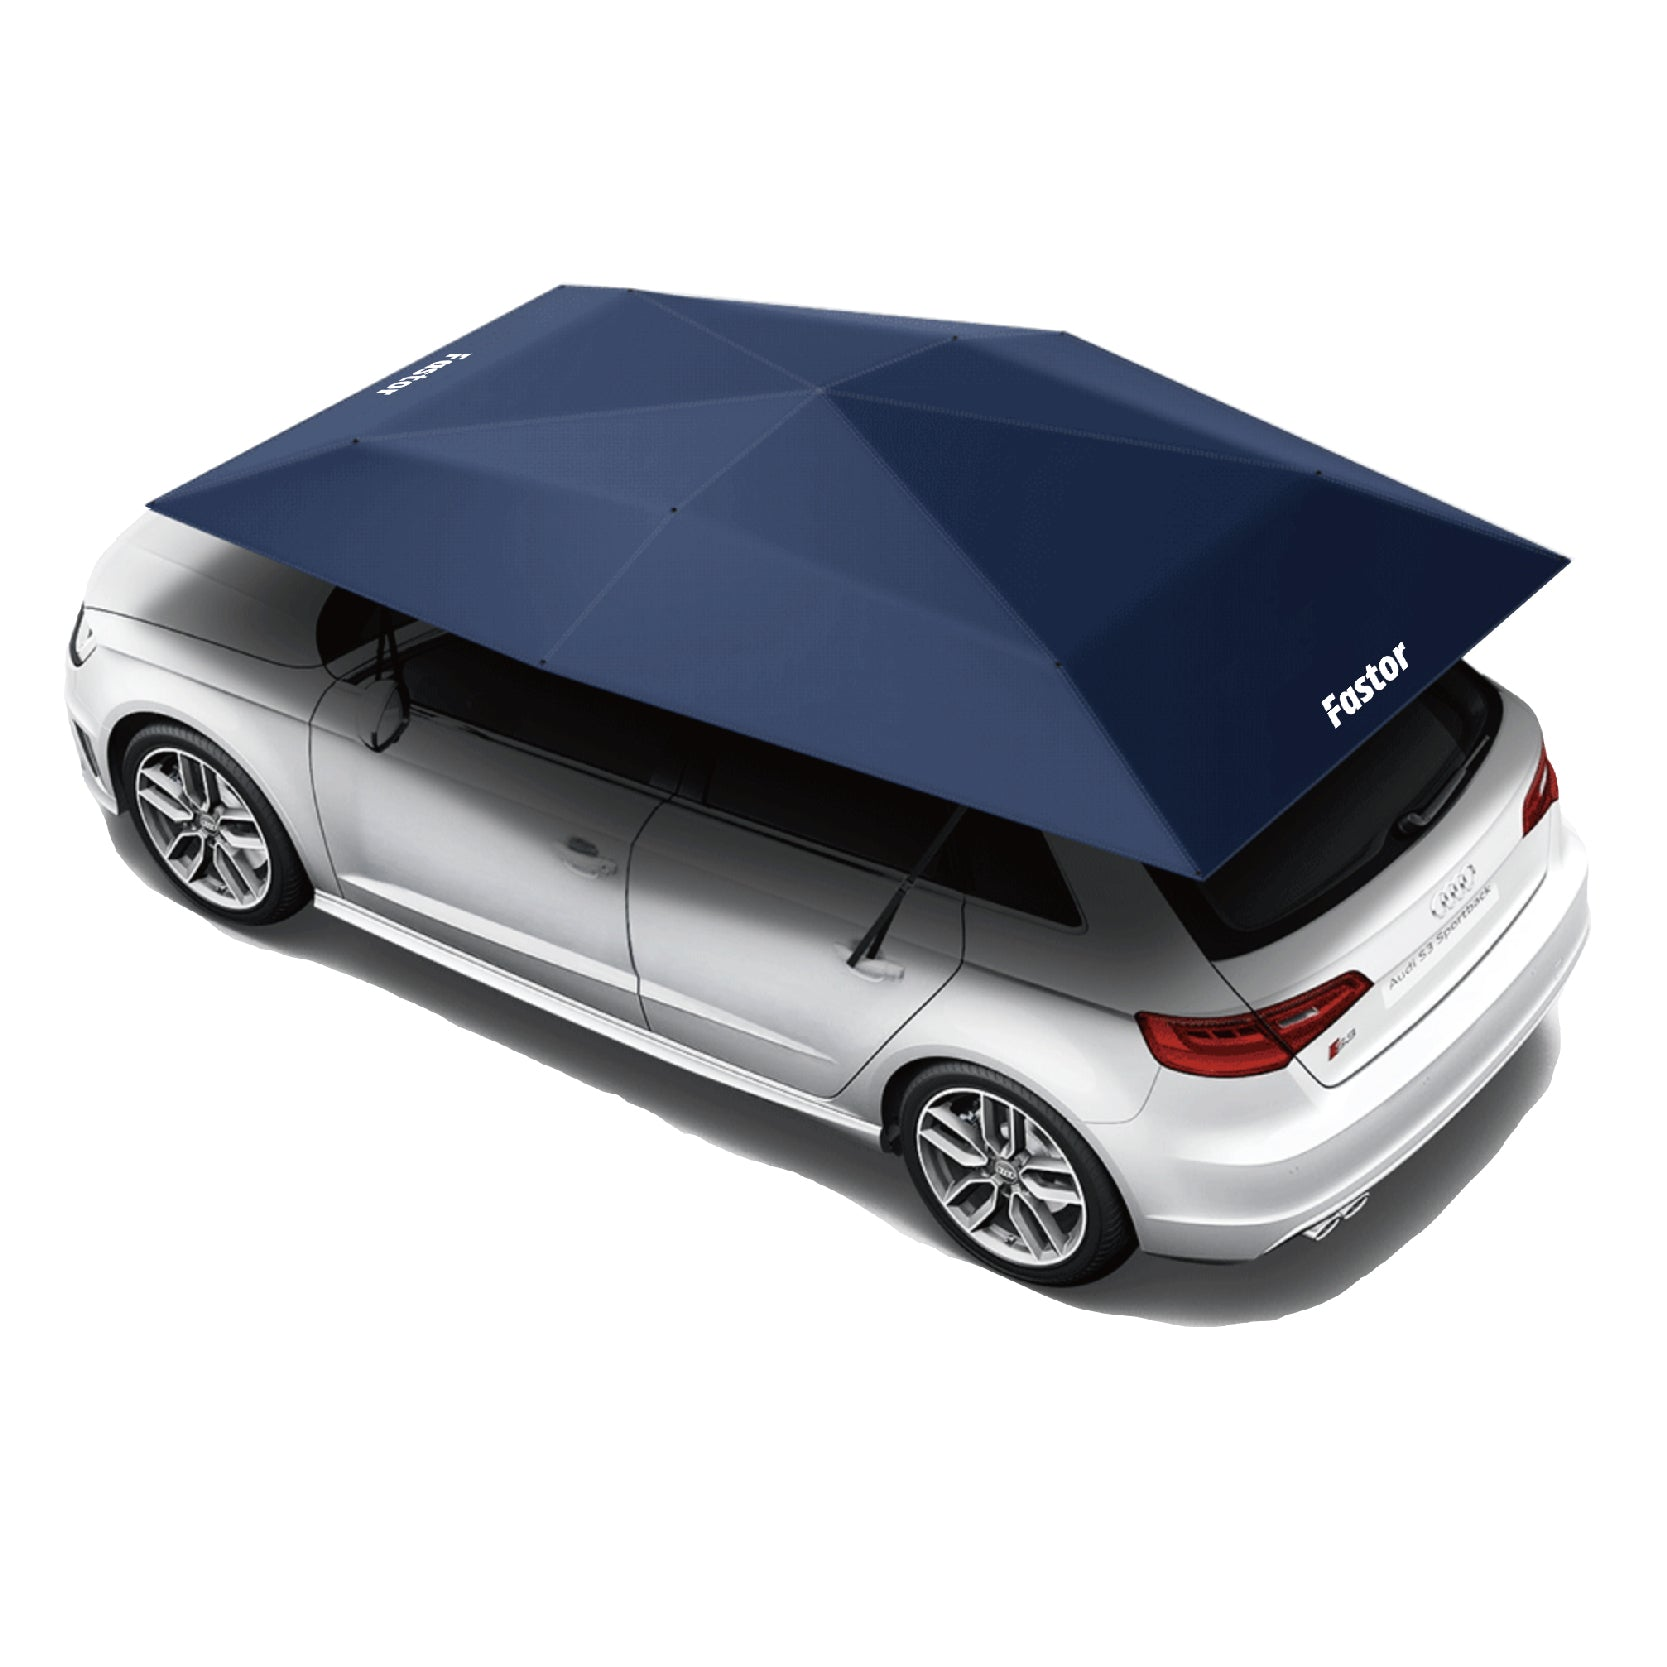 Sunproof Automatic Car Tent Car Umbrella Carport Car Canopy